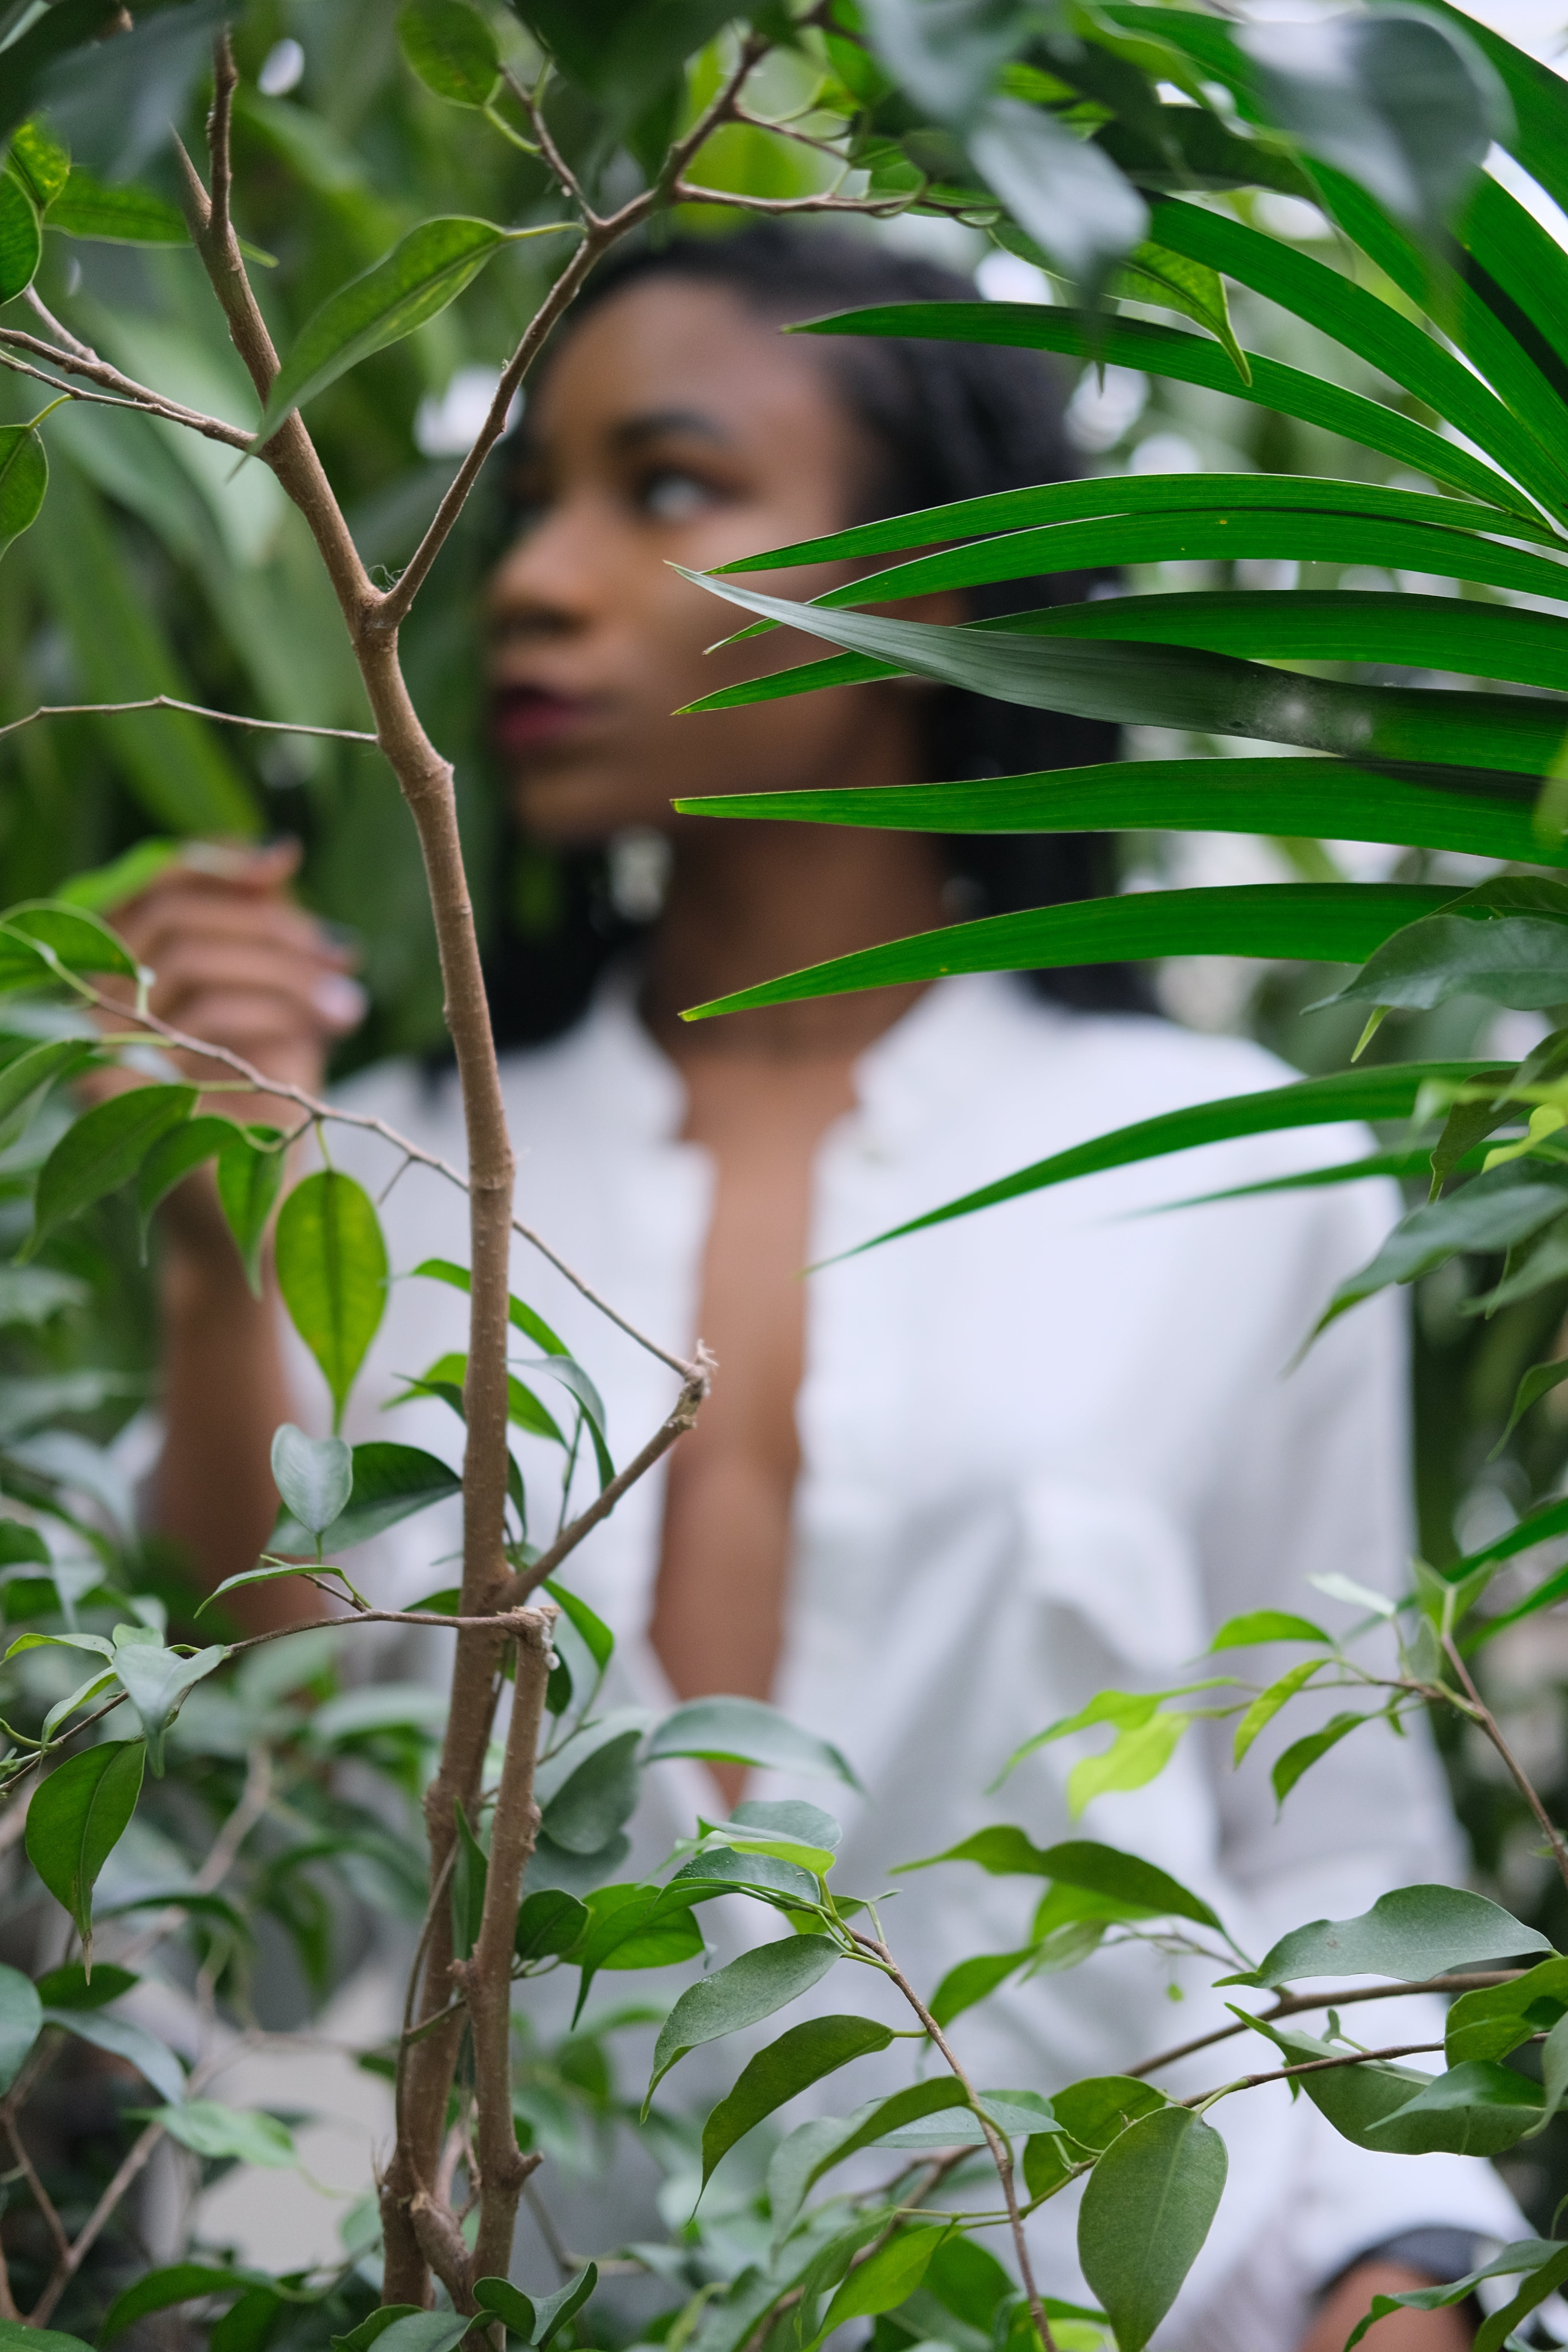 Selective Focus of Green Leaf Plant Near Woman Wearing White Shirt